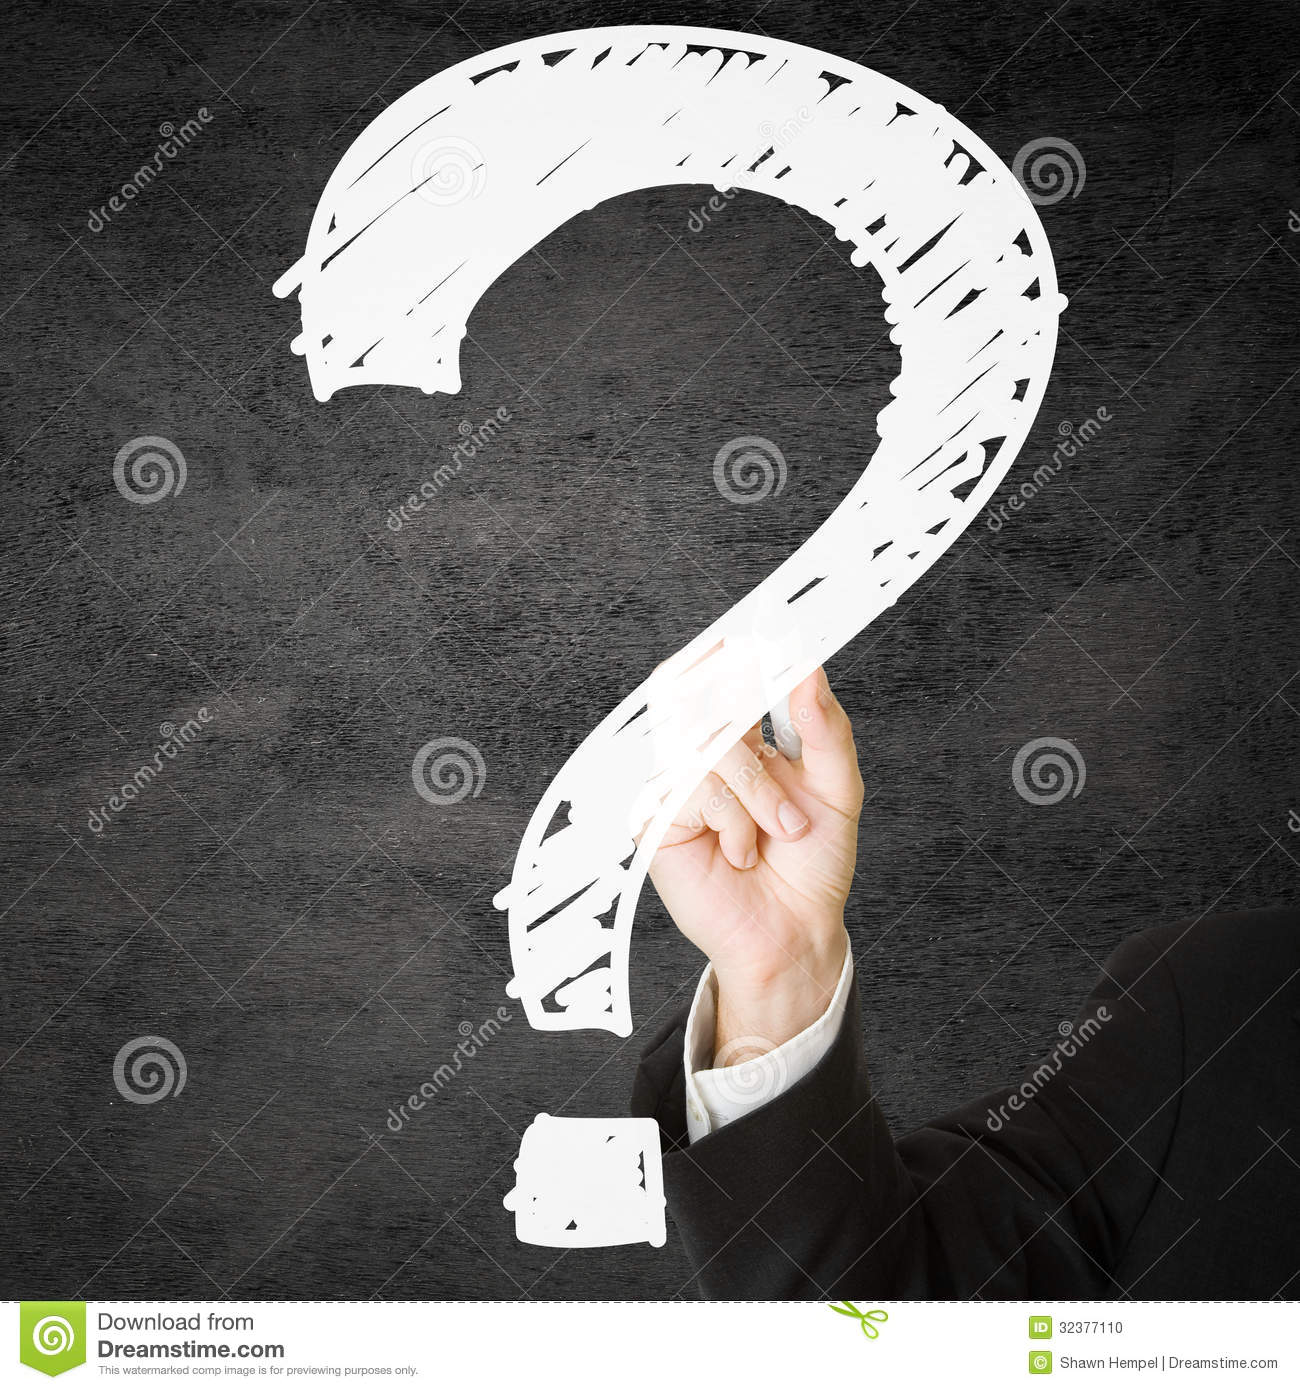 Pin Question-mark-transparent-background-image-search ...